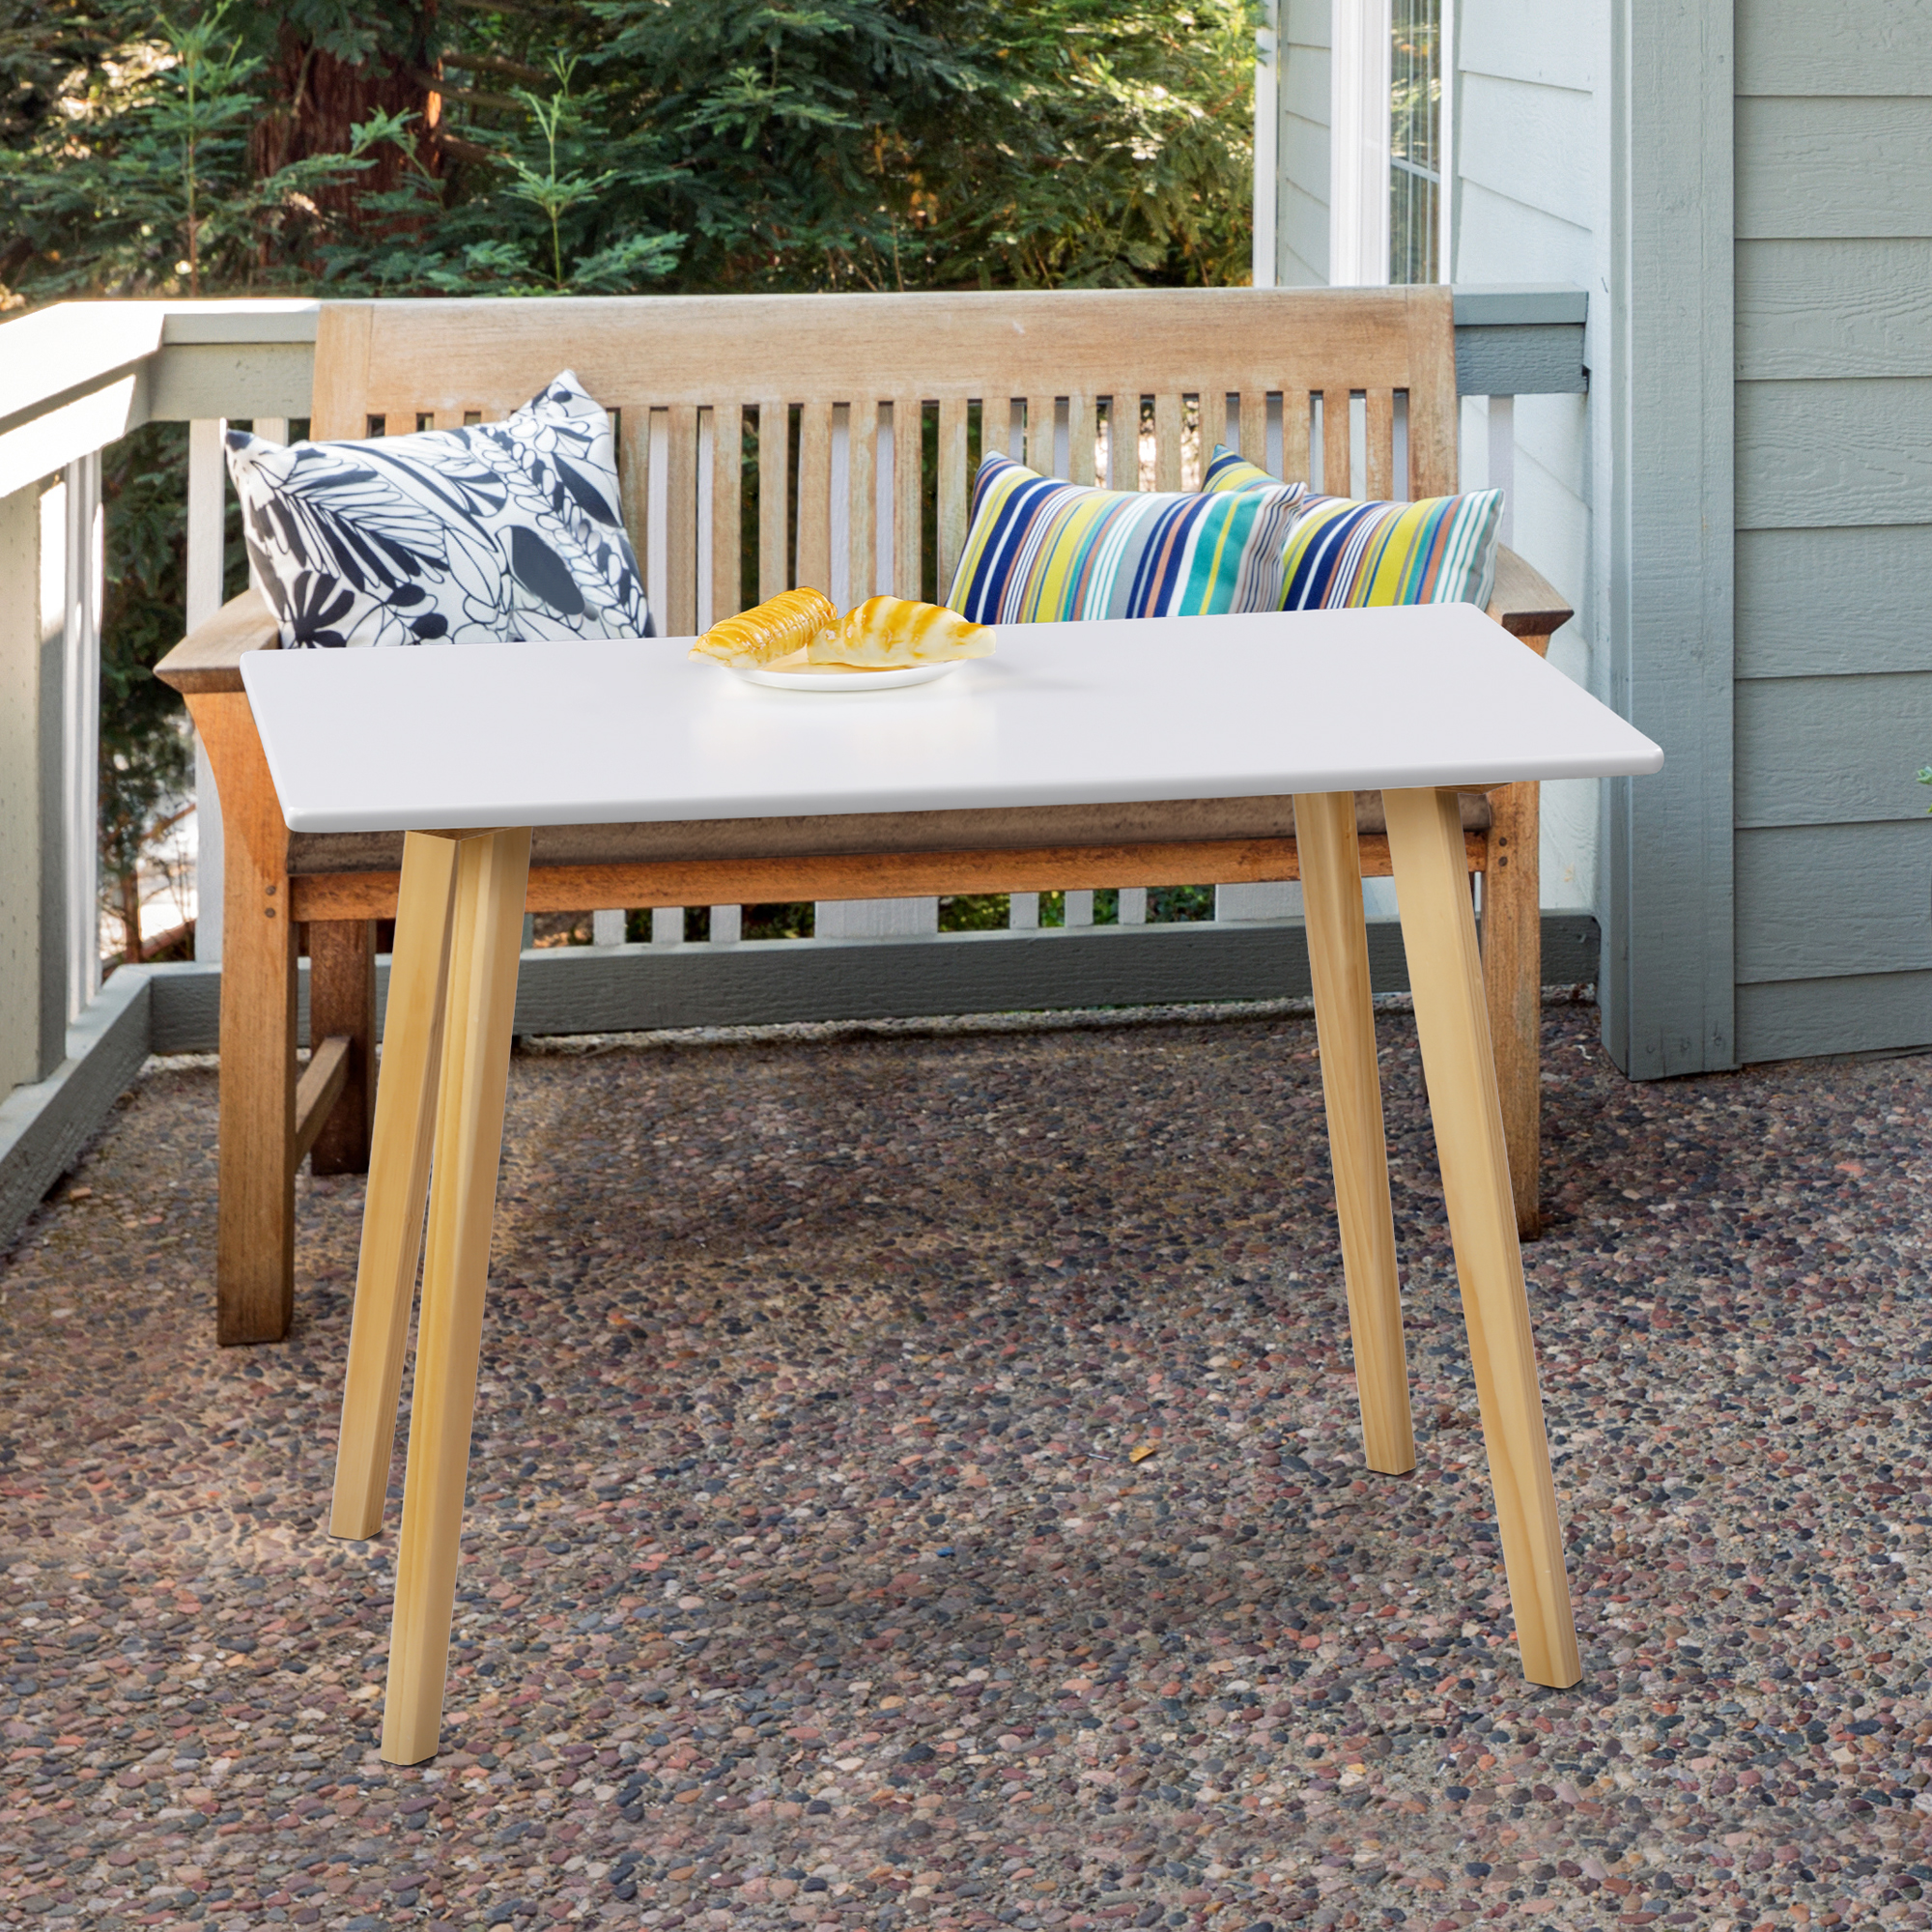 GranRest White Dining Table with Wood Legs